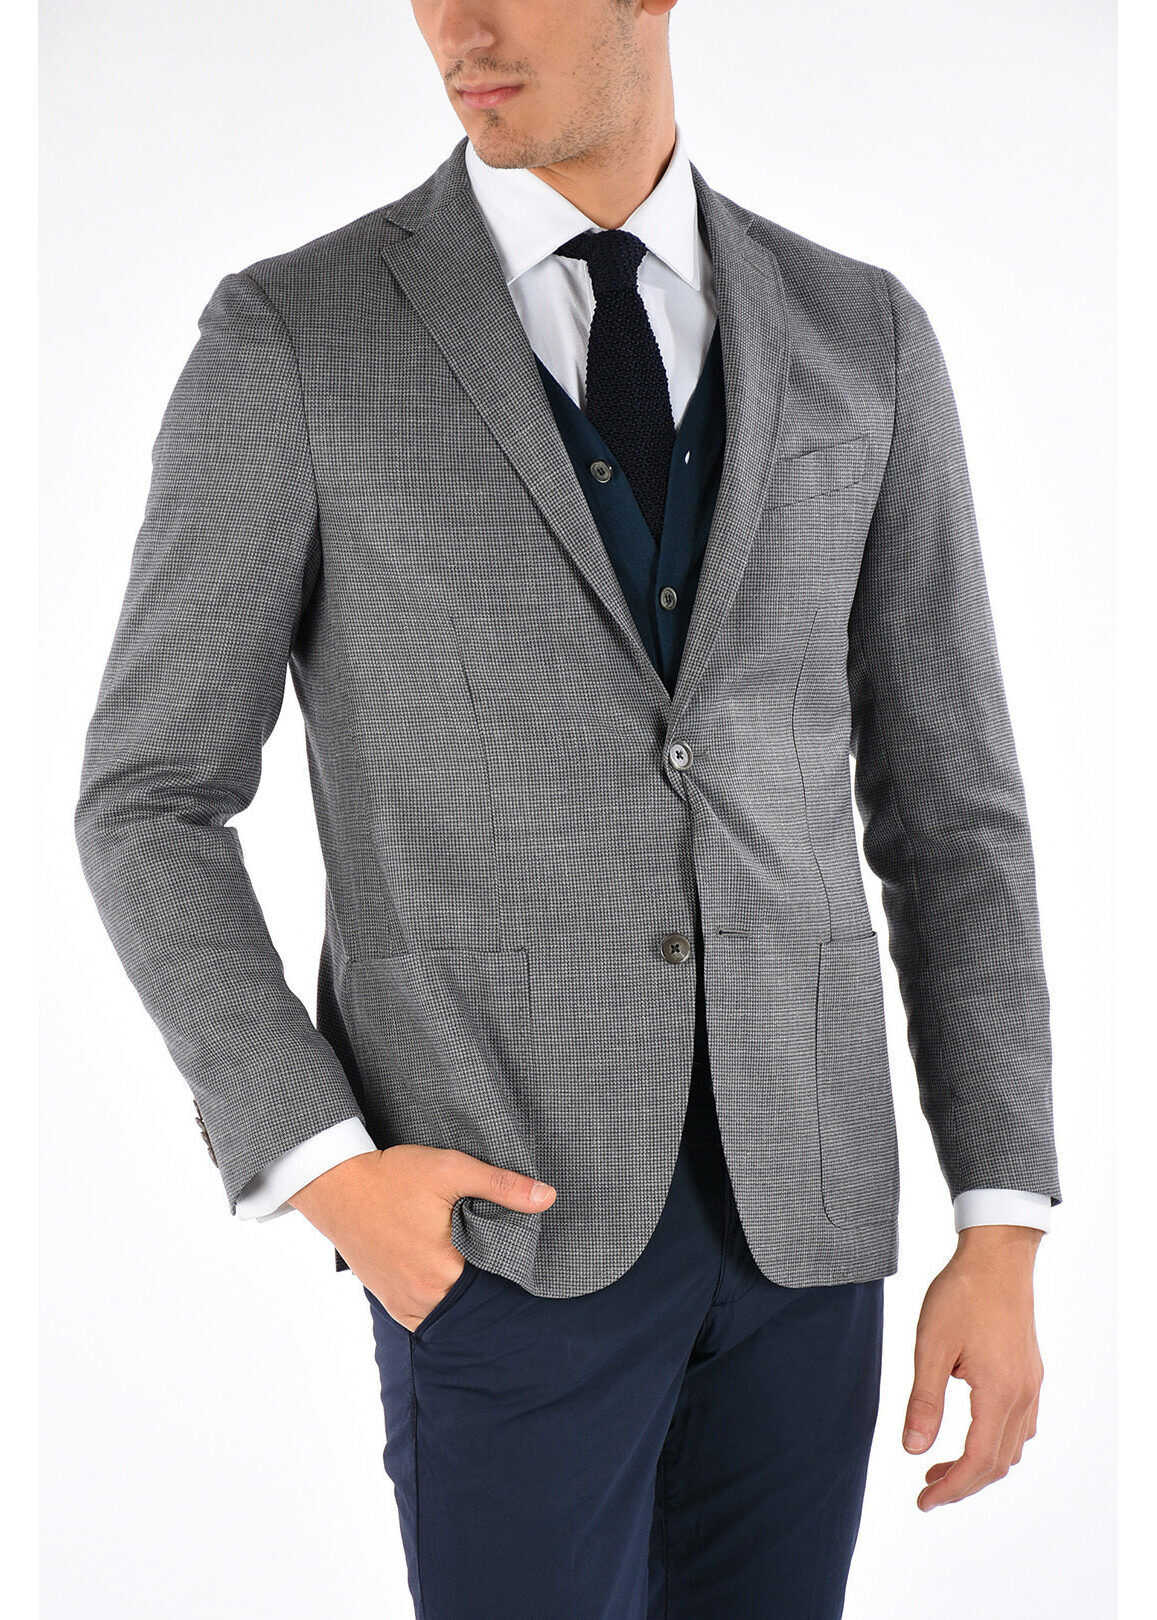 CORNELIANI CC COLLECTION Wool and Silk RIGHT Blazer GRAY